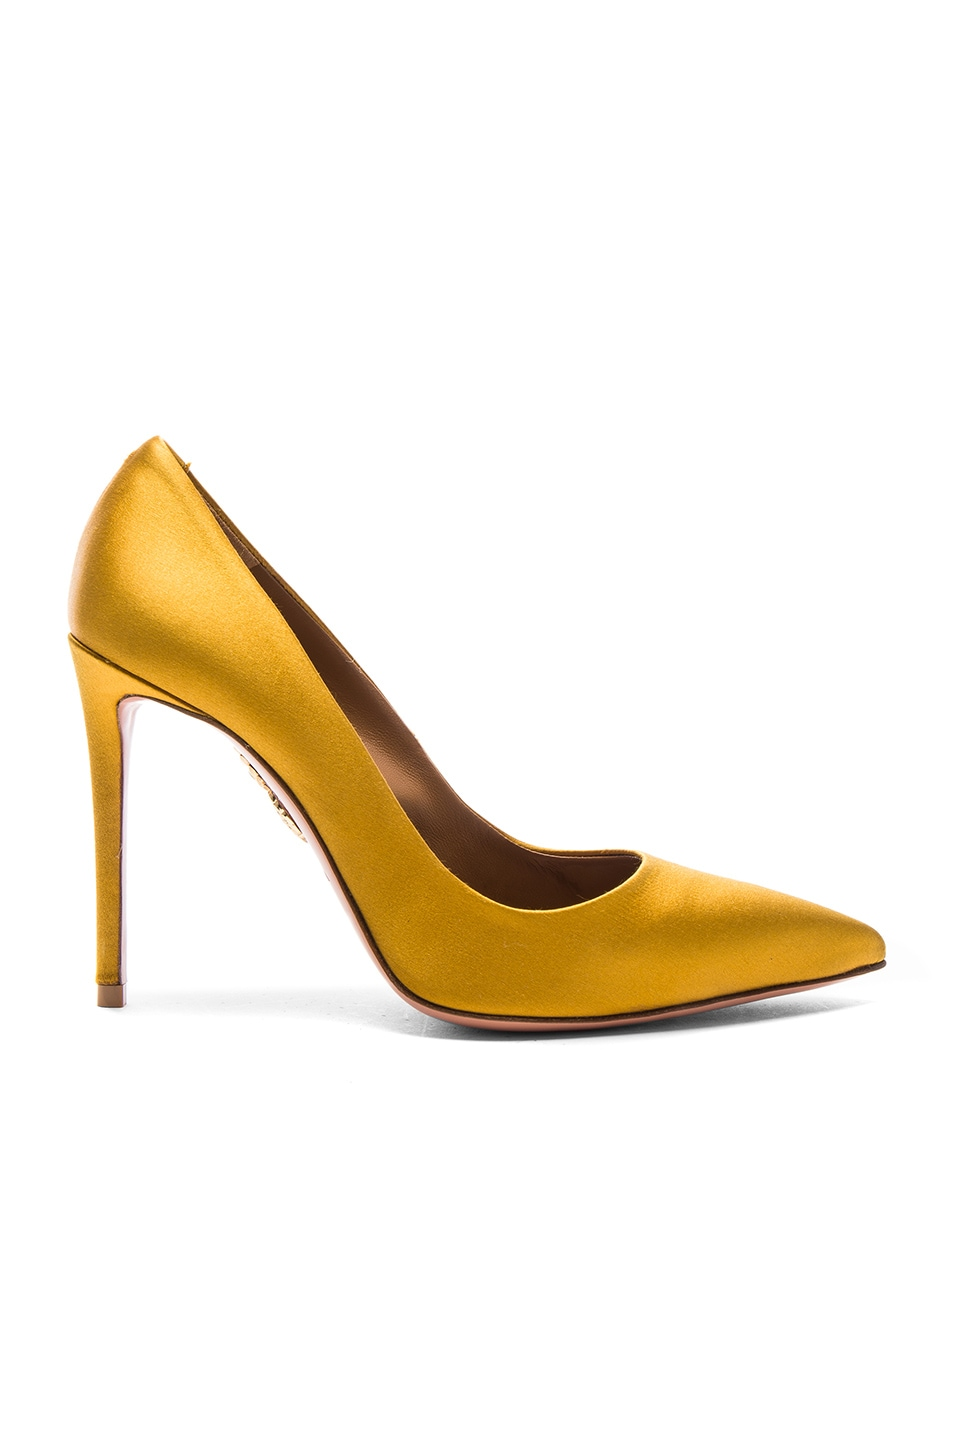 Image 1 of Aquazzura Satin Simply Irresistible Pumps in Amber Yellow Satin